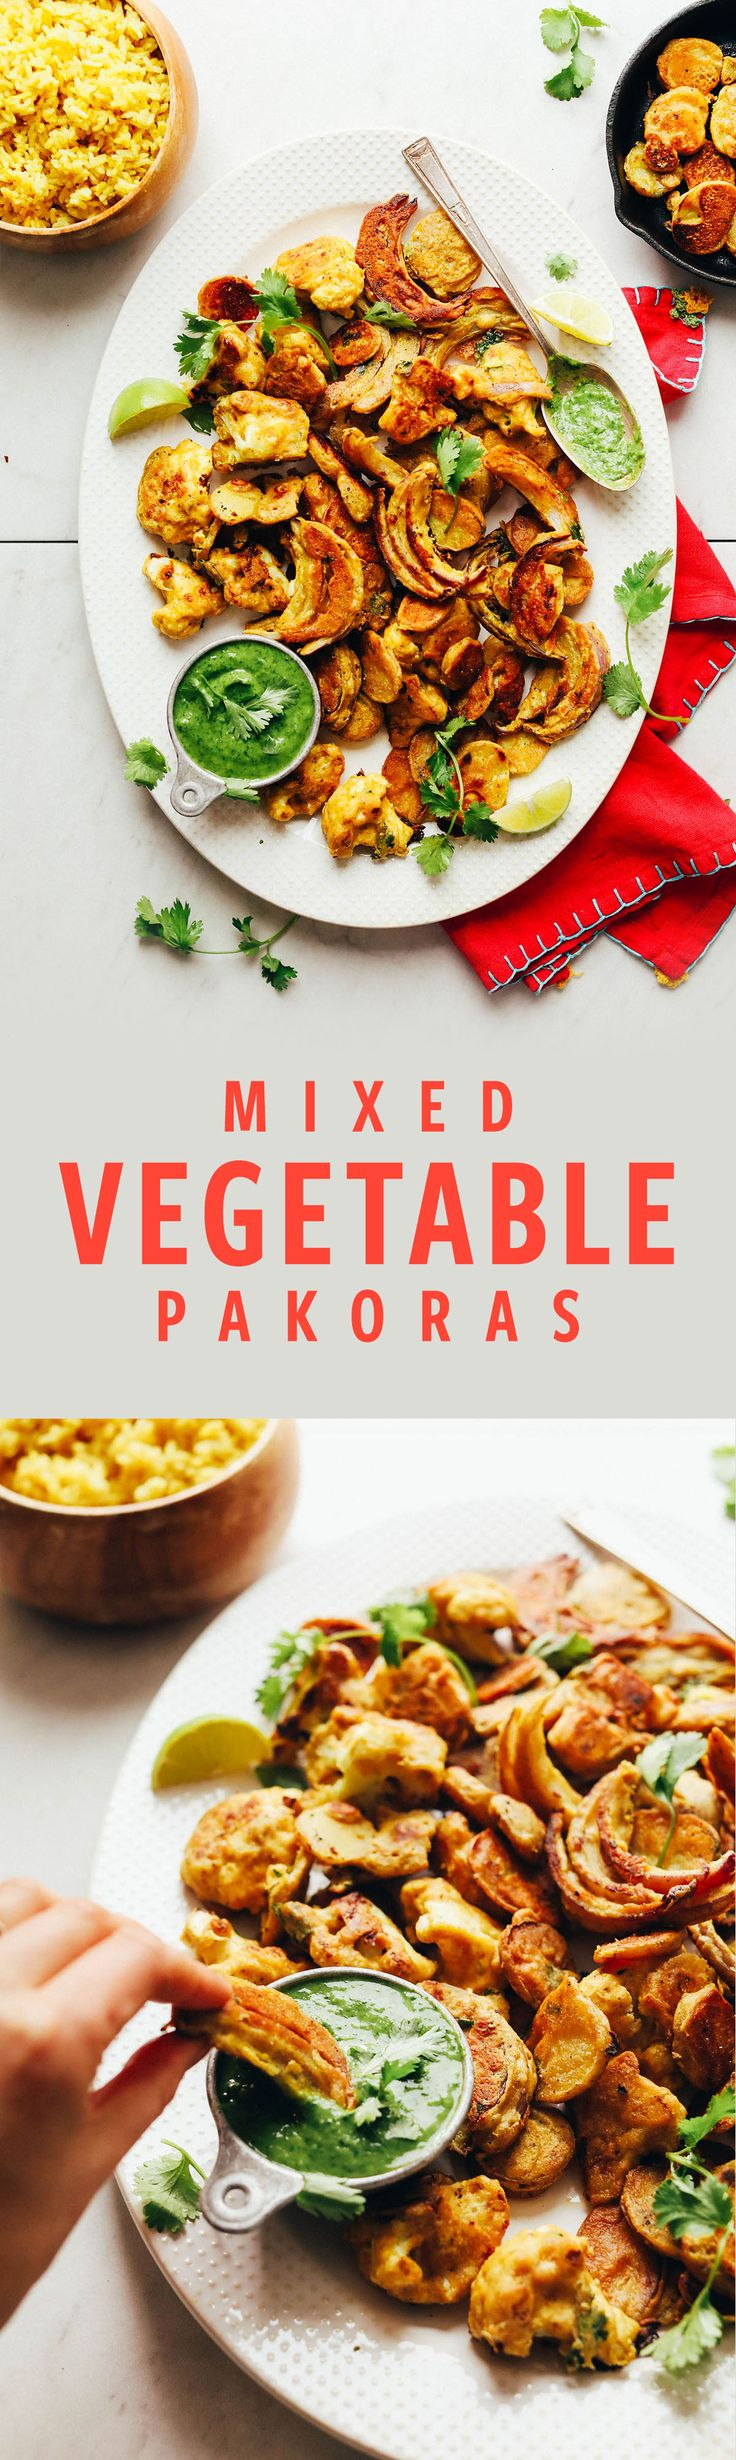 DELICIOUS Vegetable Pakoras in 30 minutes!